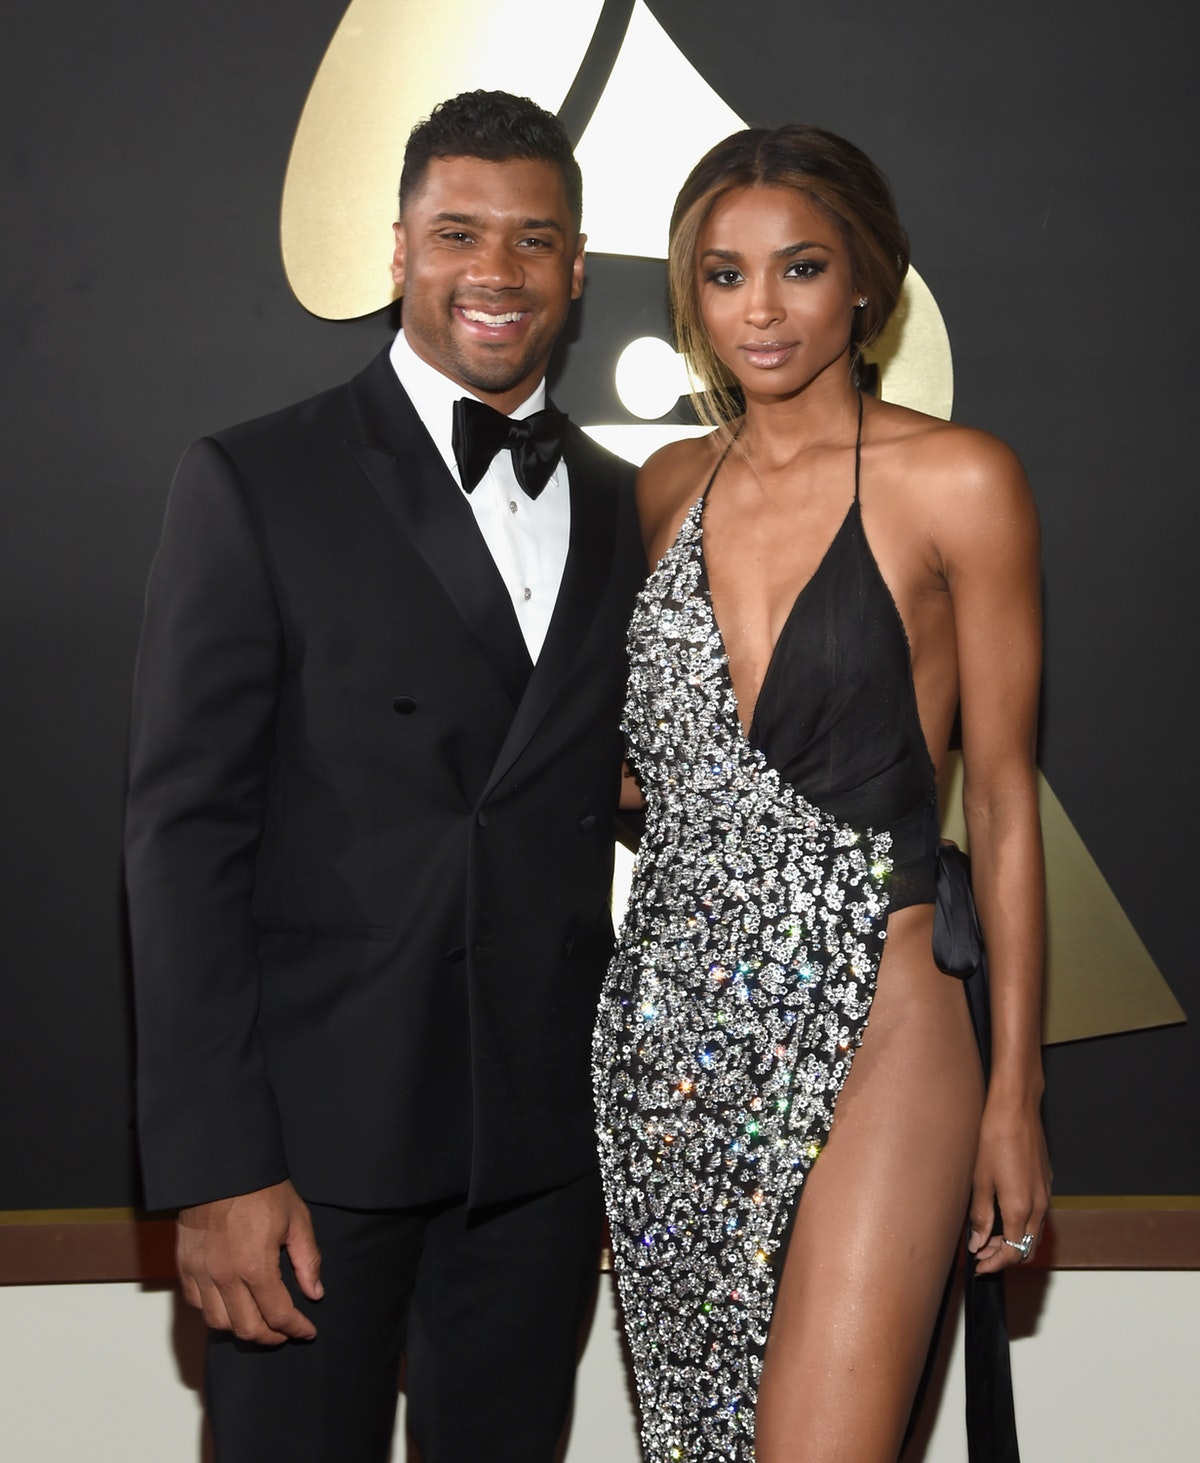 Who is ciara marrying